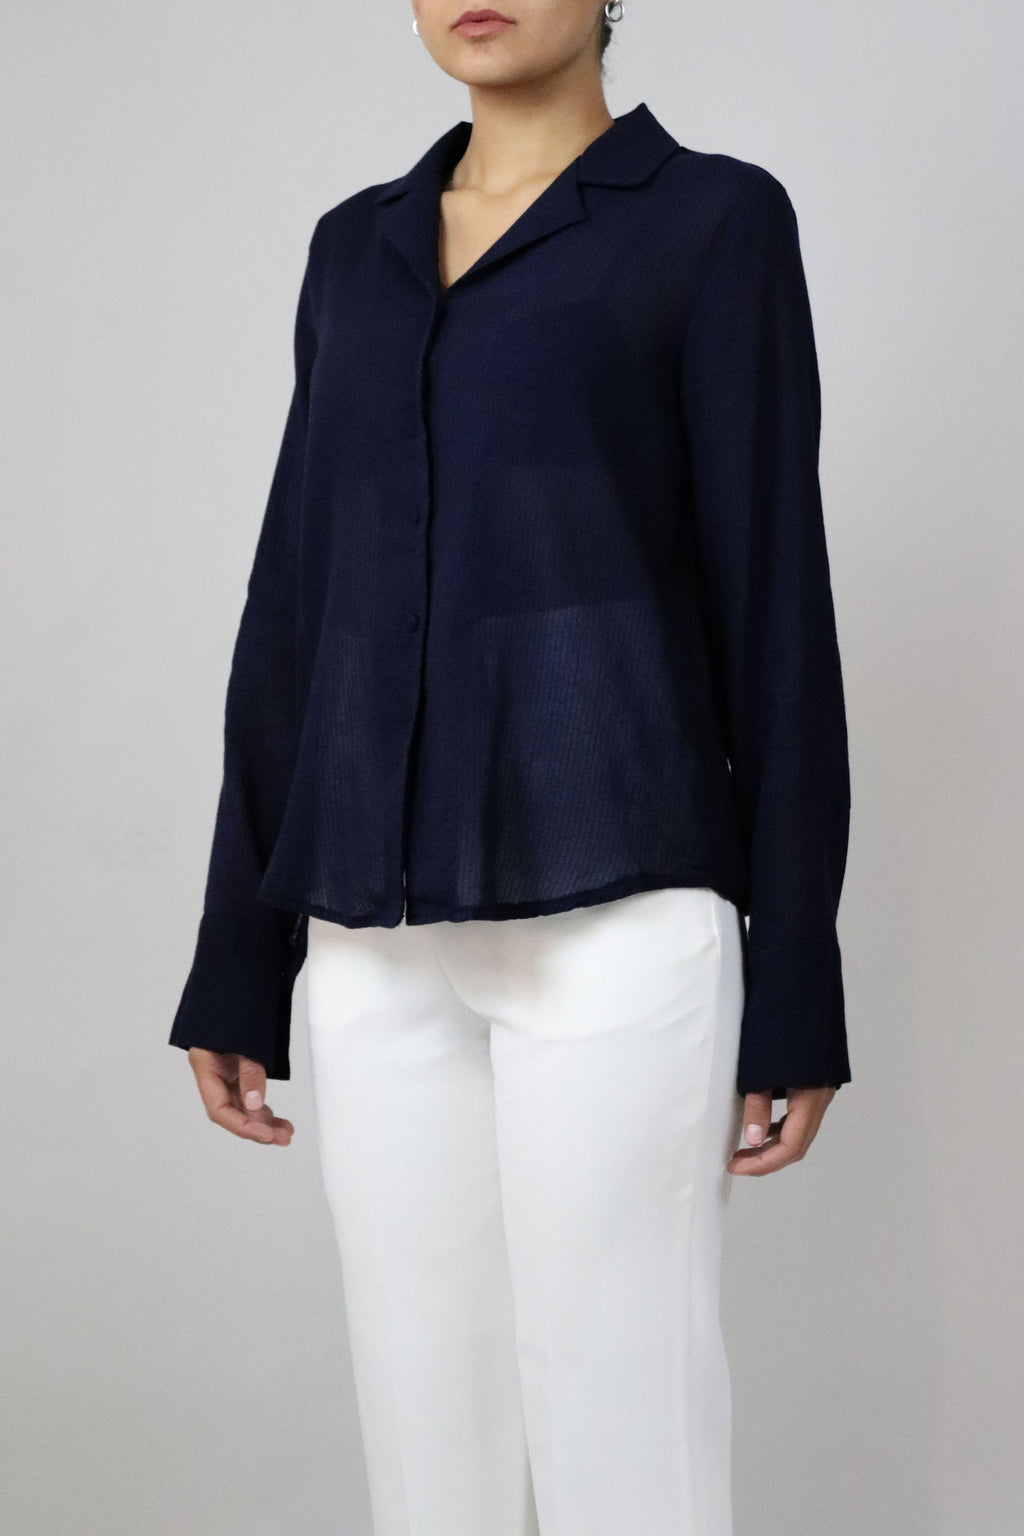 Basic Navy Button Down Top